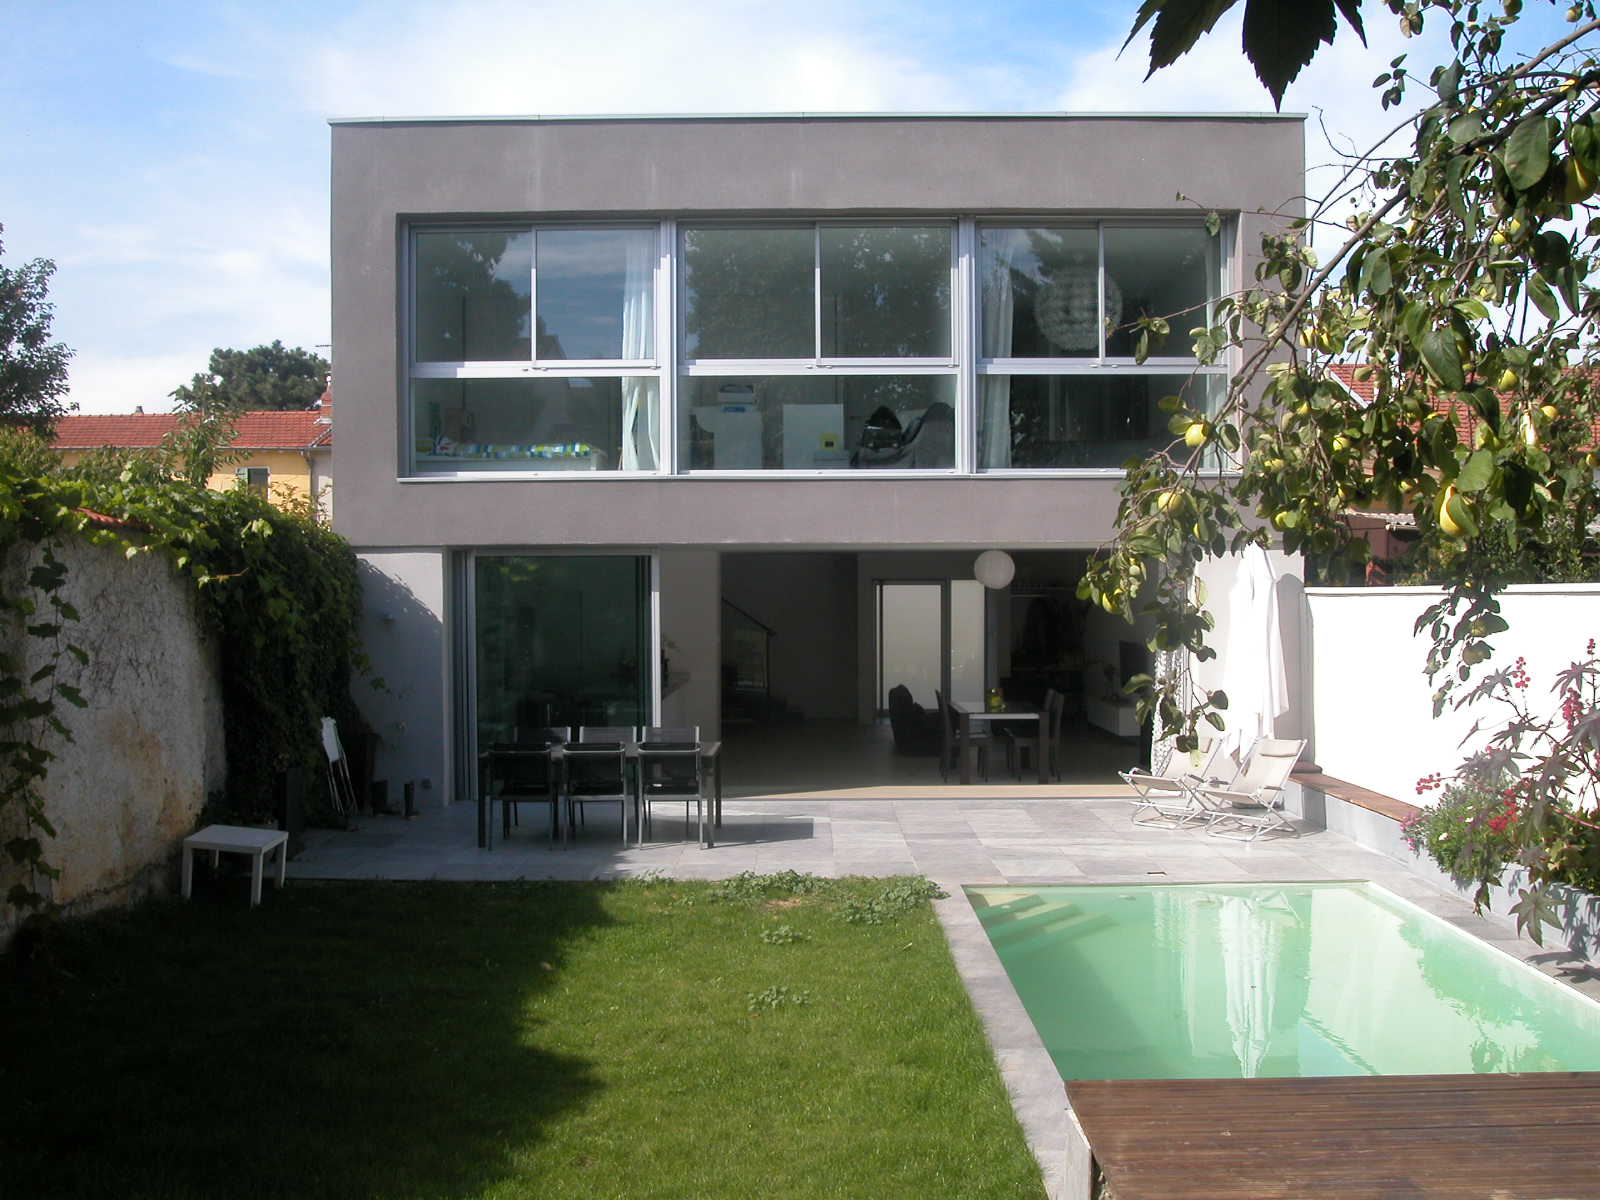 Decoration maison contemporaine architecte - Maison moderne ken linsteadt architecte ...